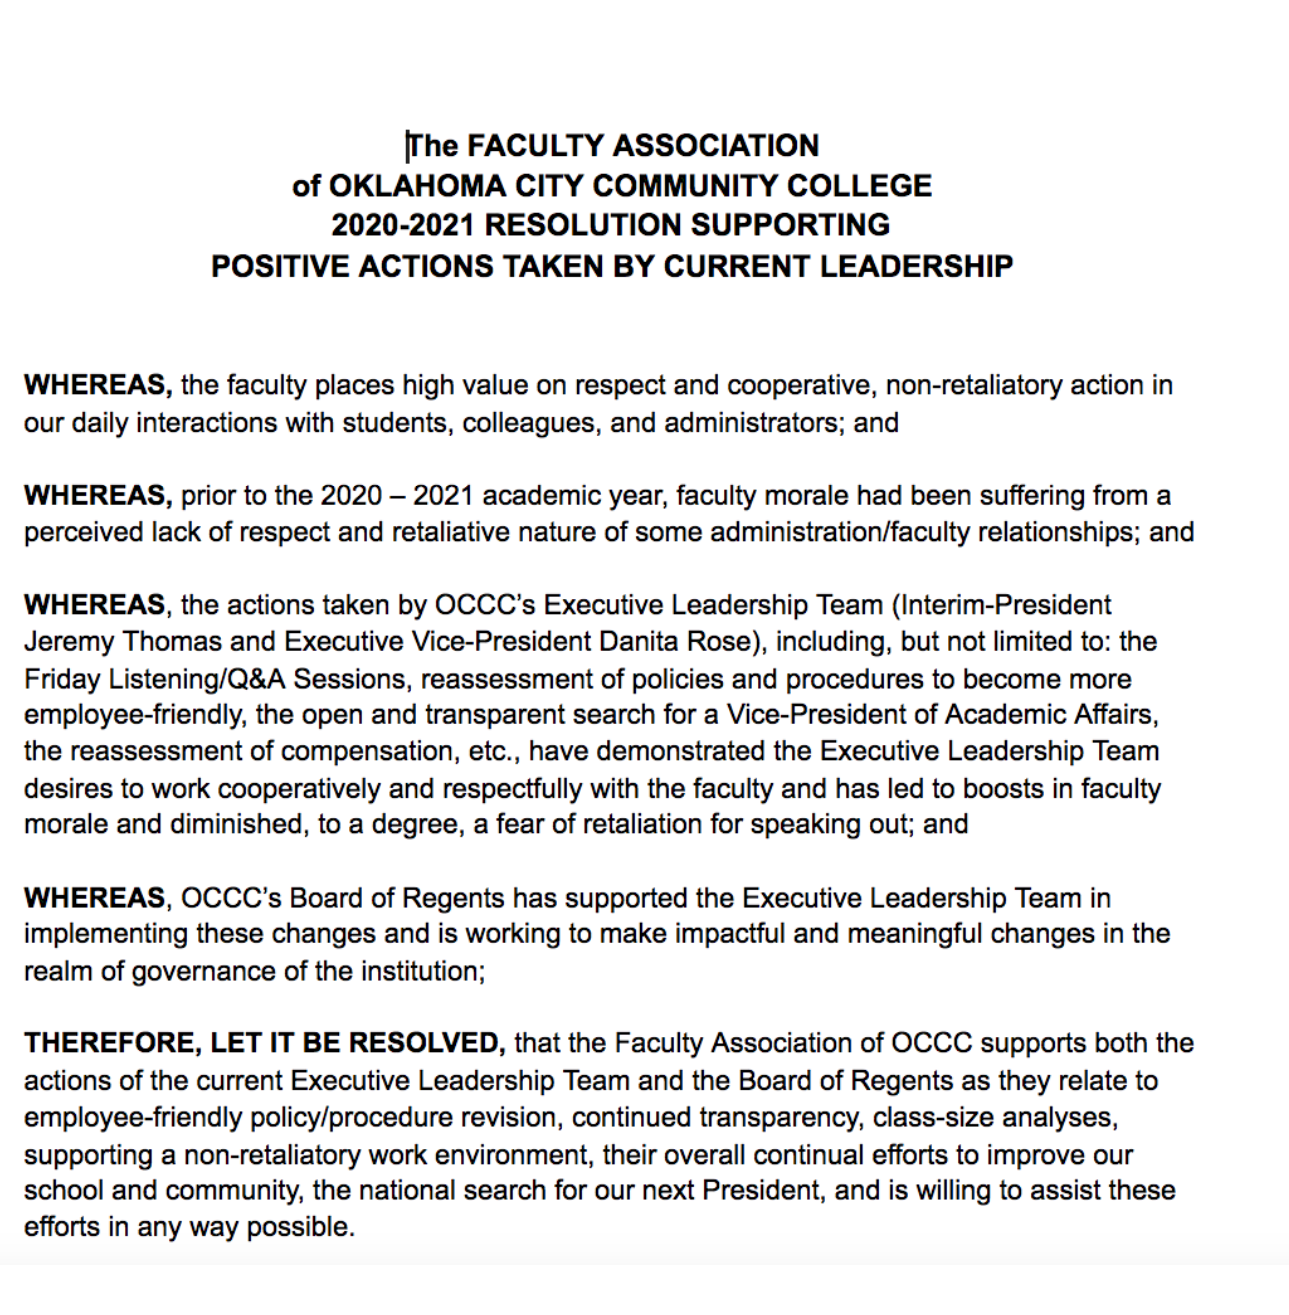 New administration bettering OCCC, Faculty Association says in resolution